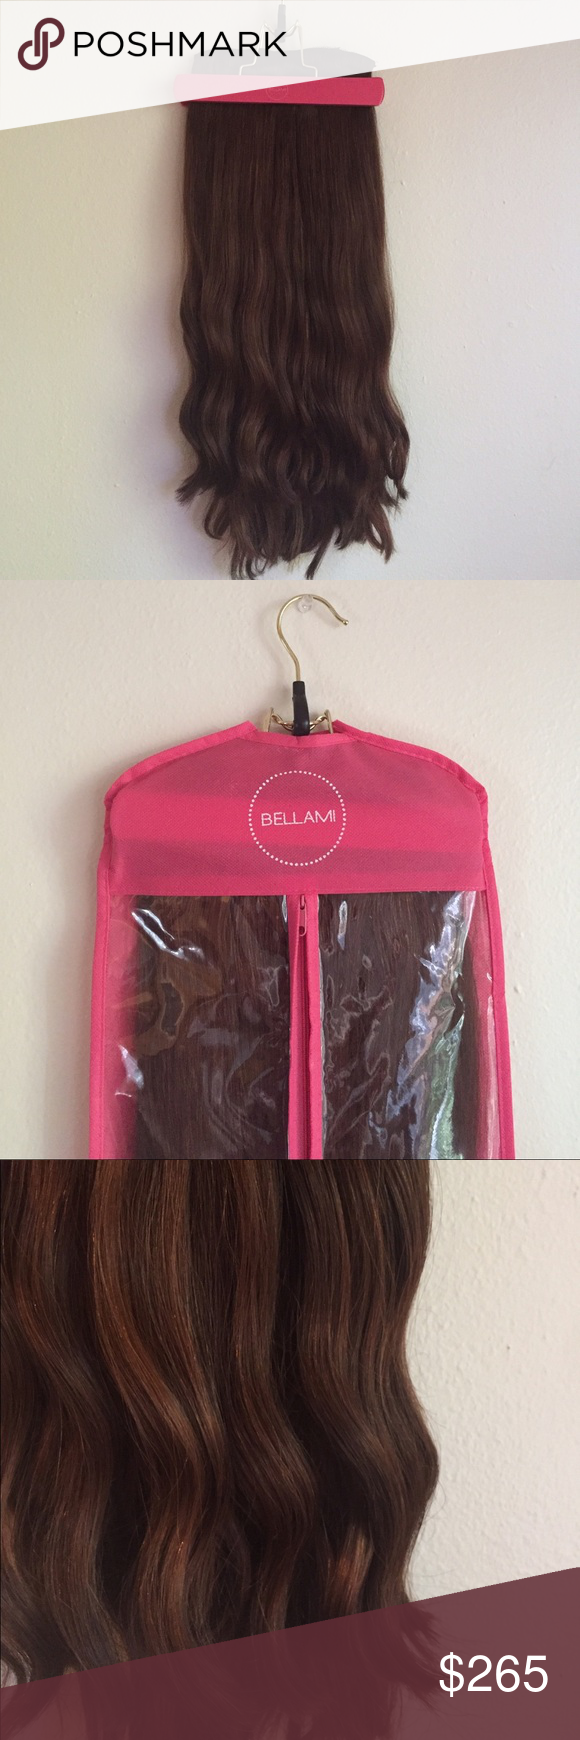 Bellami Lilly Extensions Bellami Lilly Hair Extensions